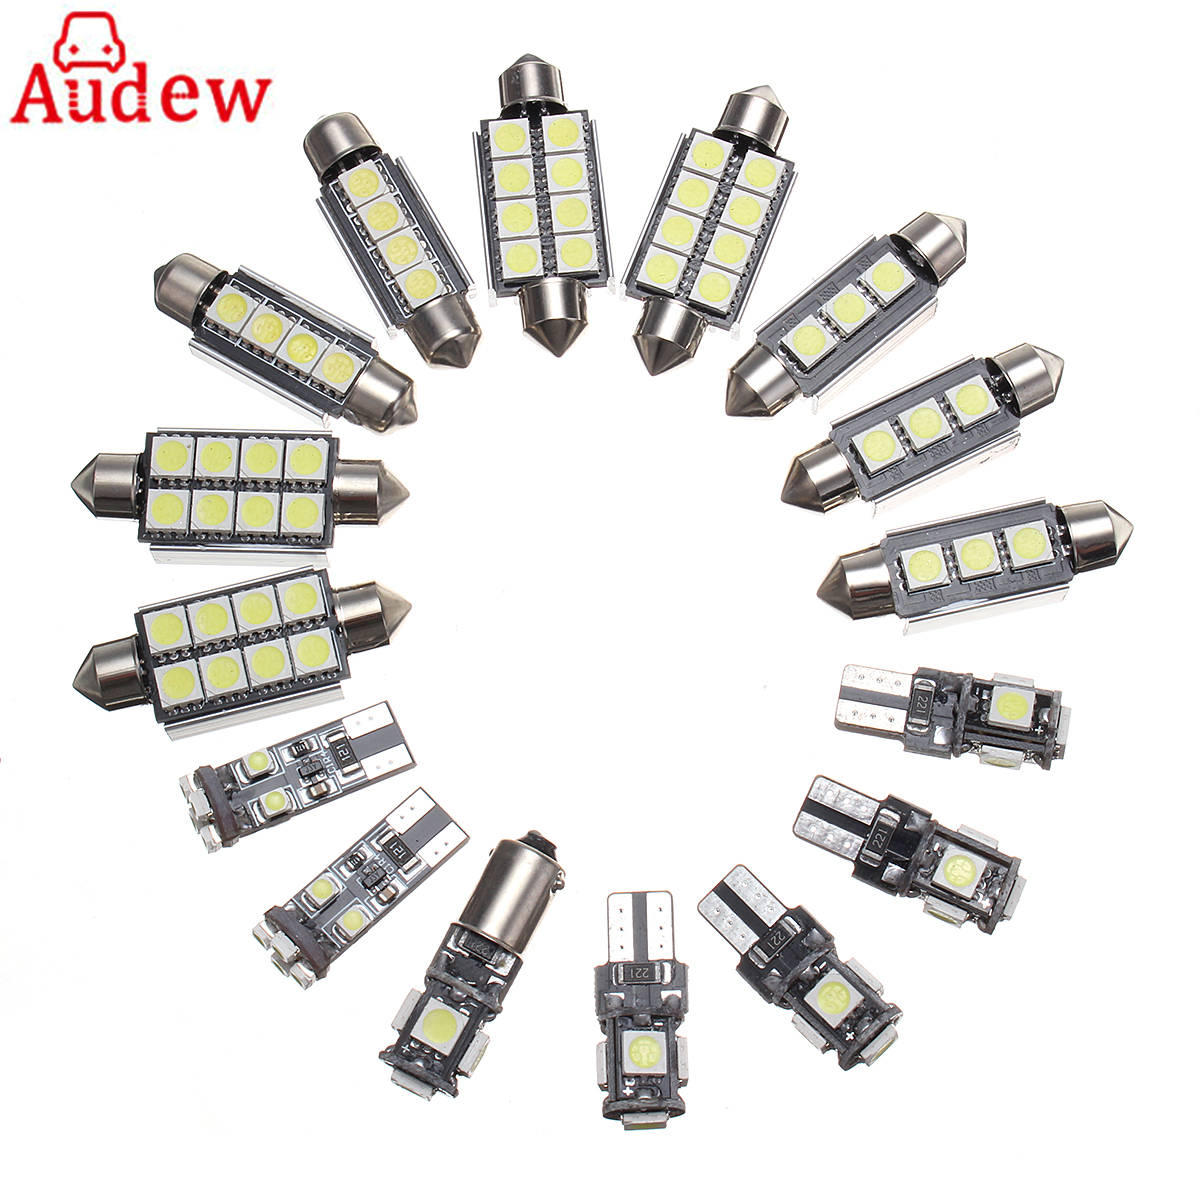 20pcs white Car Interior lamp LED canbus Light Kit With Tool for Audi A4 S4 B8 avant 2009-2015 15pc x 100% canbus led lamp interior map dome reading light kit package for audi a4 s4 b8 saloon sedan only 2009 2015